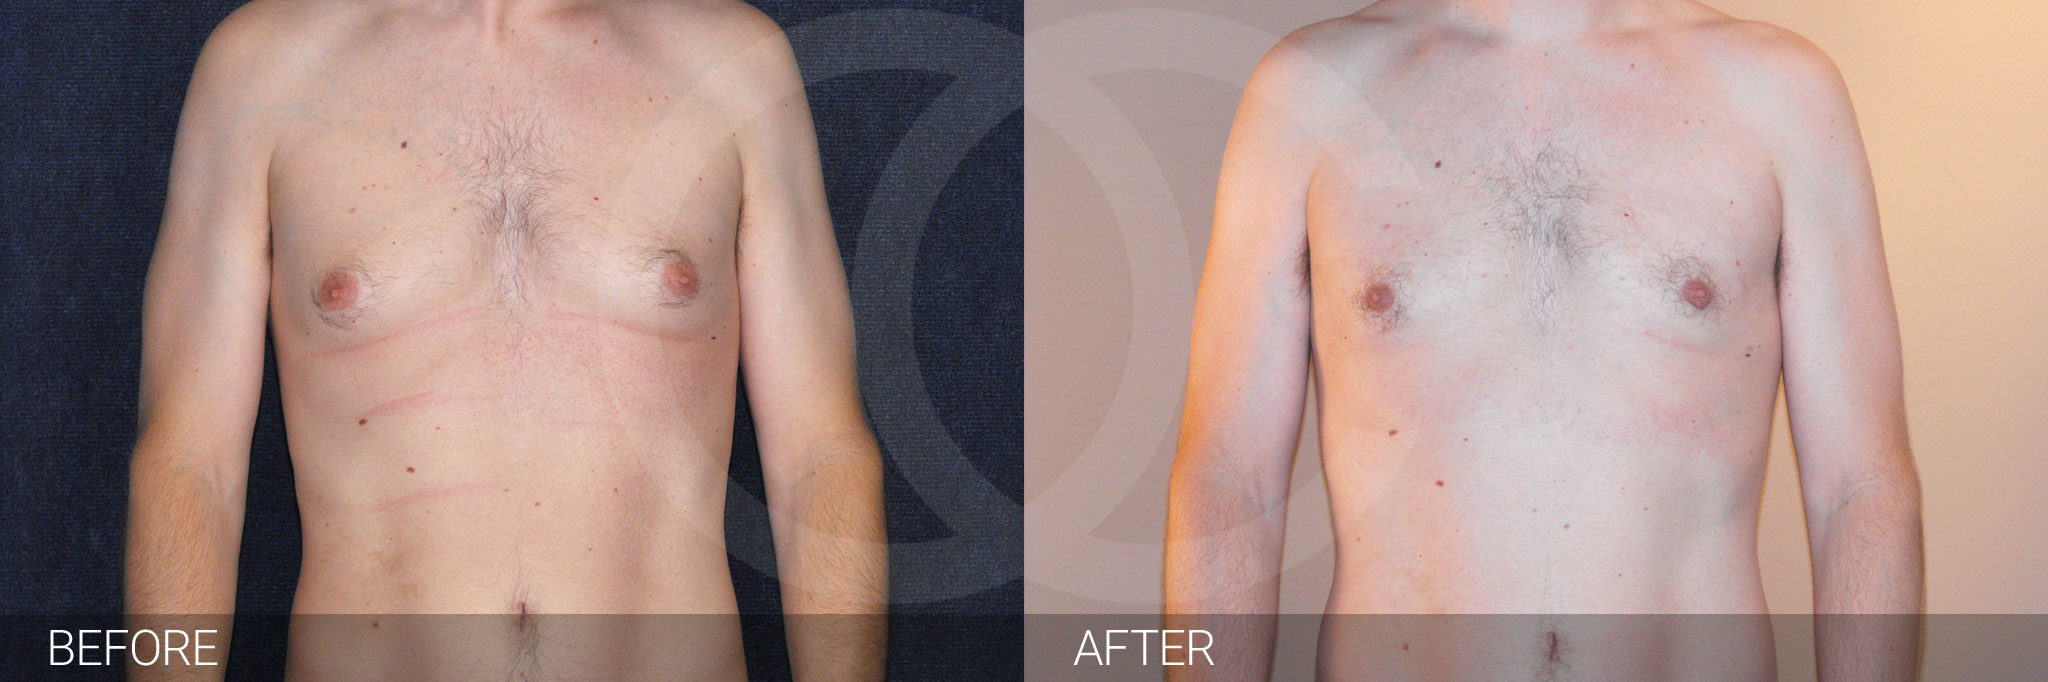 Gynecomastia with liposuction ante/post-op I